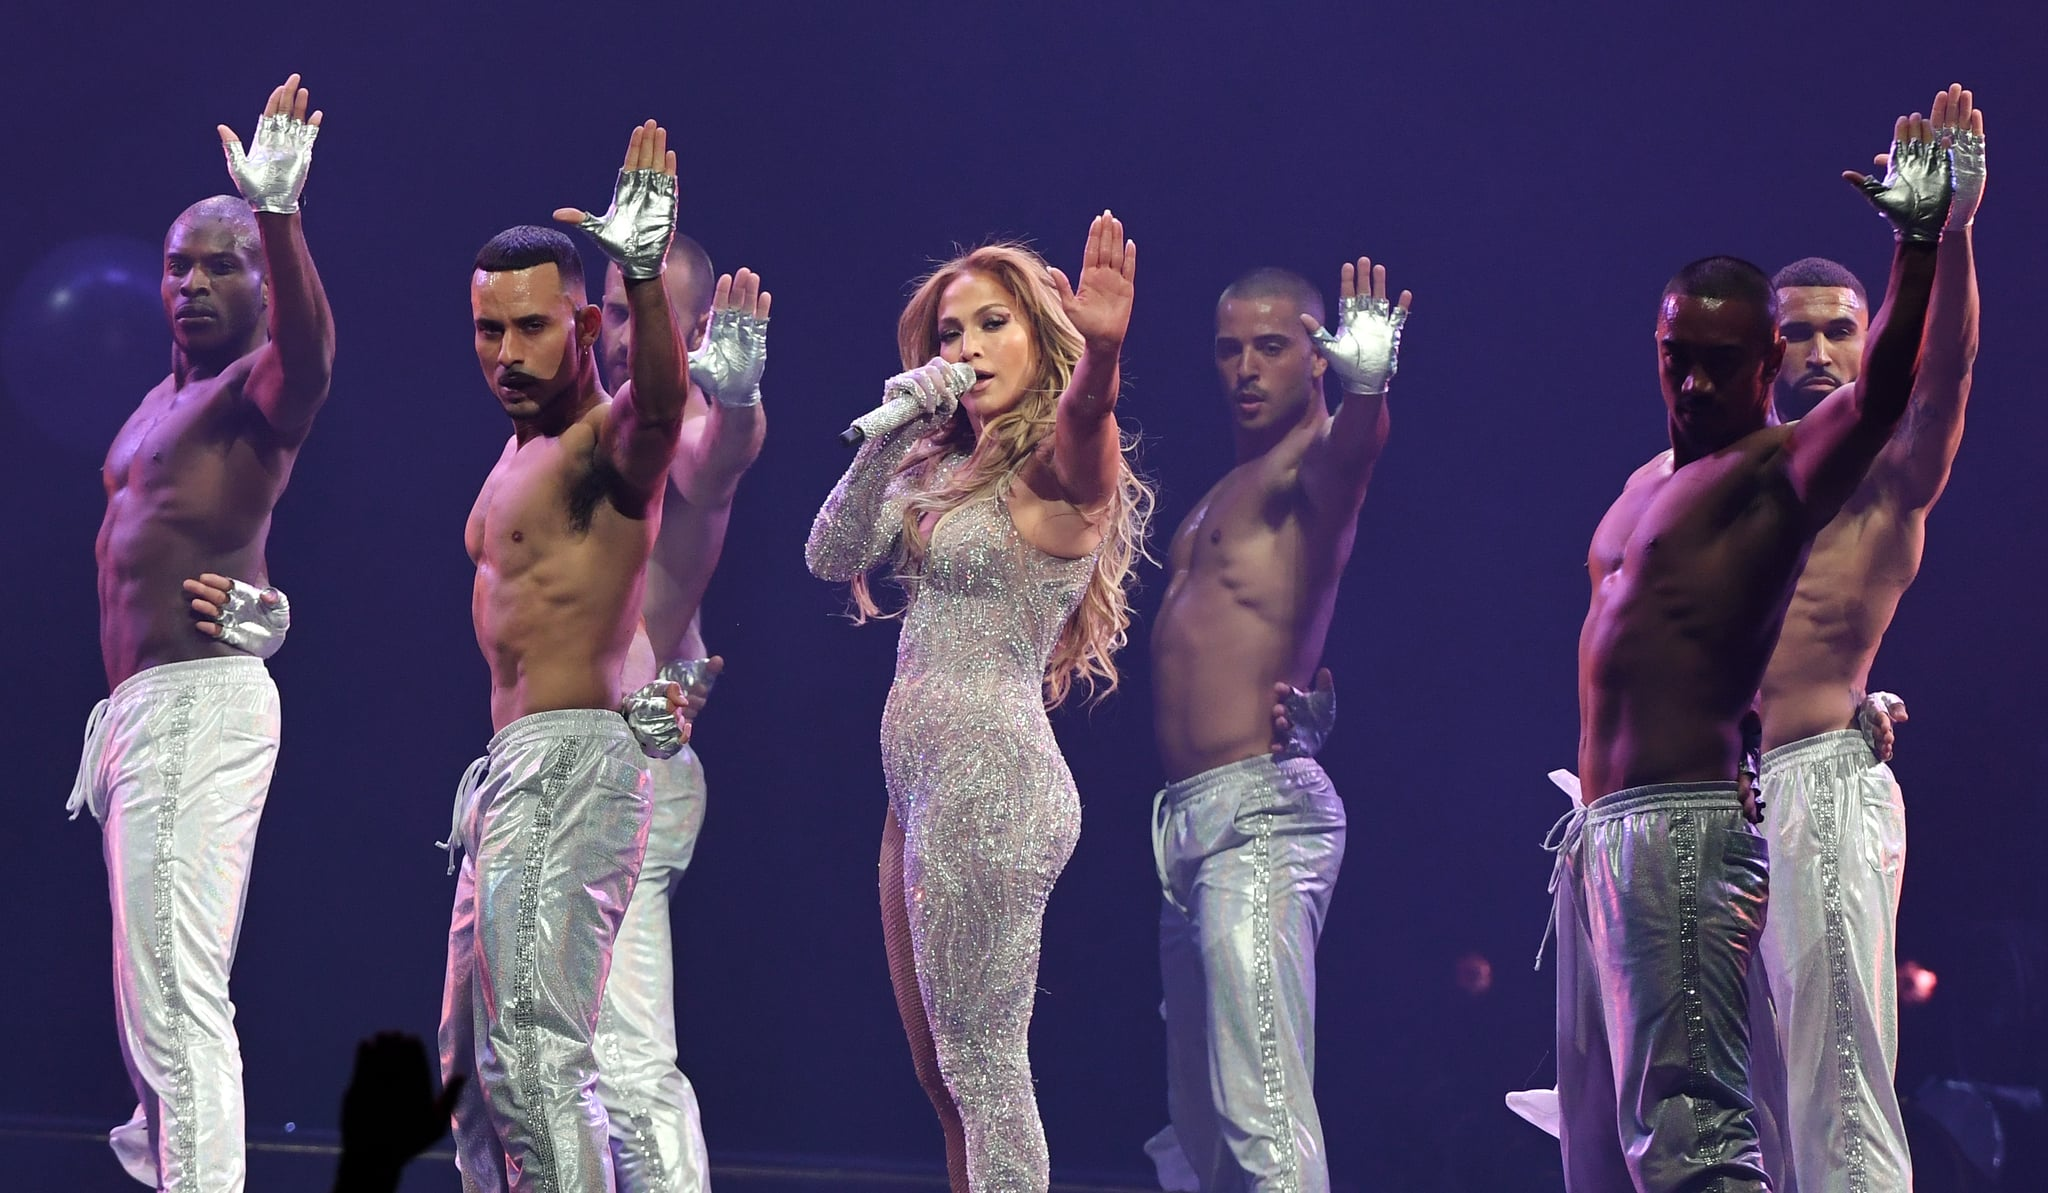 LAS VEGAS, NEVADA - JUNE 15:  Jennifer Lopez (C) performs with dancers during a stop of her It's My Party tour at T-Mobile Arena on June 15, 2019 in Las Vegas, Nevada.  (Photo by Ethan Miller/Getty Images for ABA)